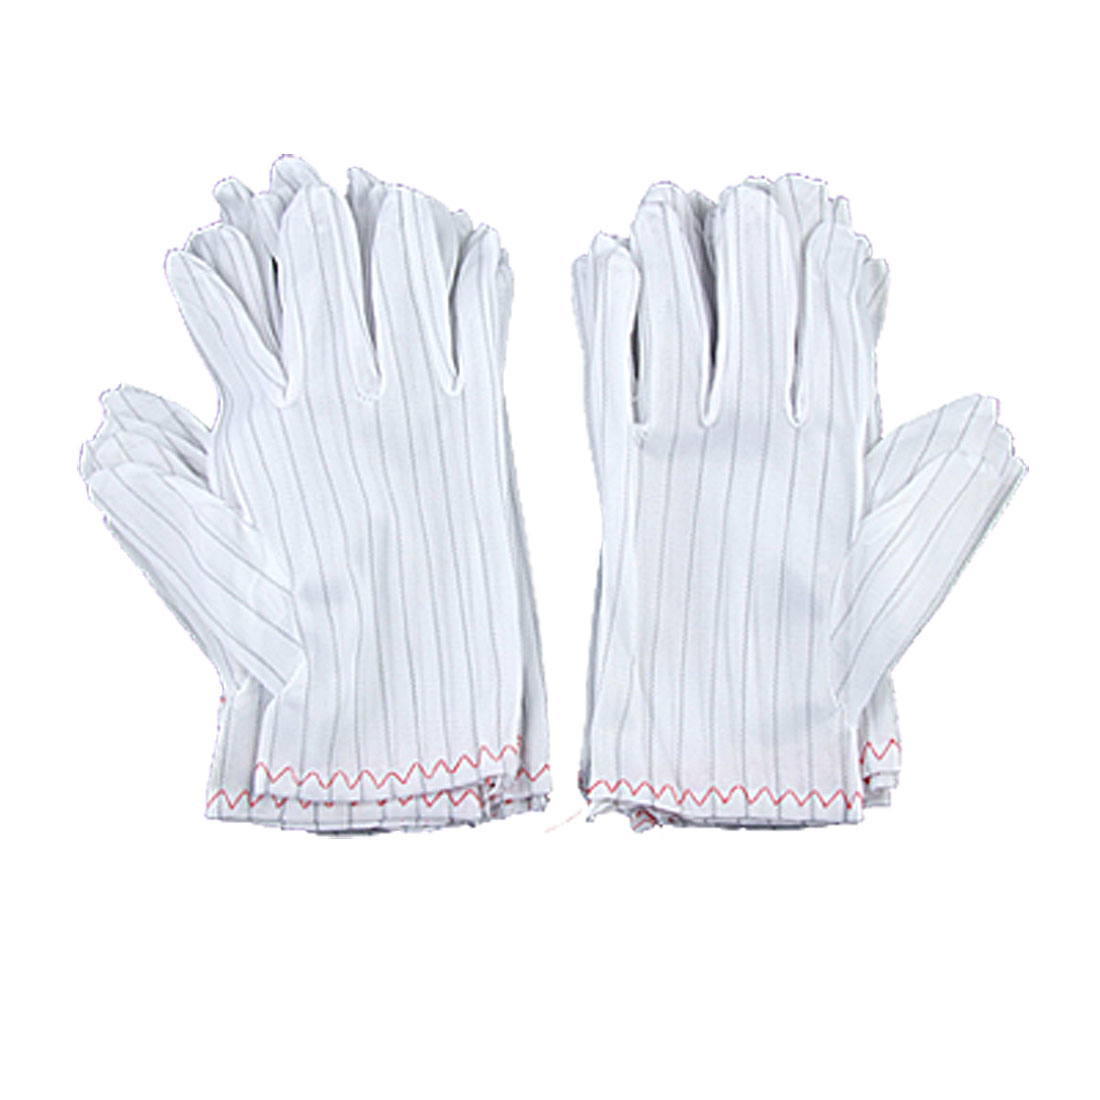 White Black Striped Style Anti-Static Gloves for Adult 10 Pair XS